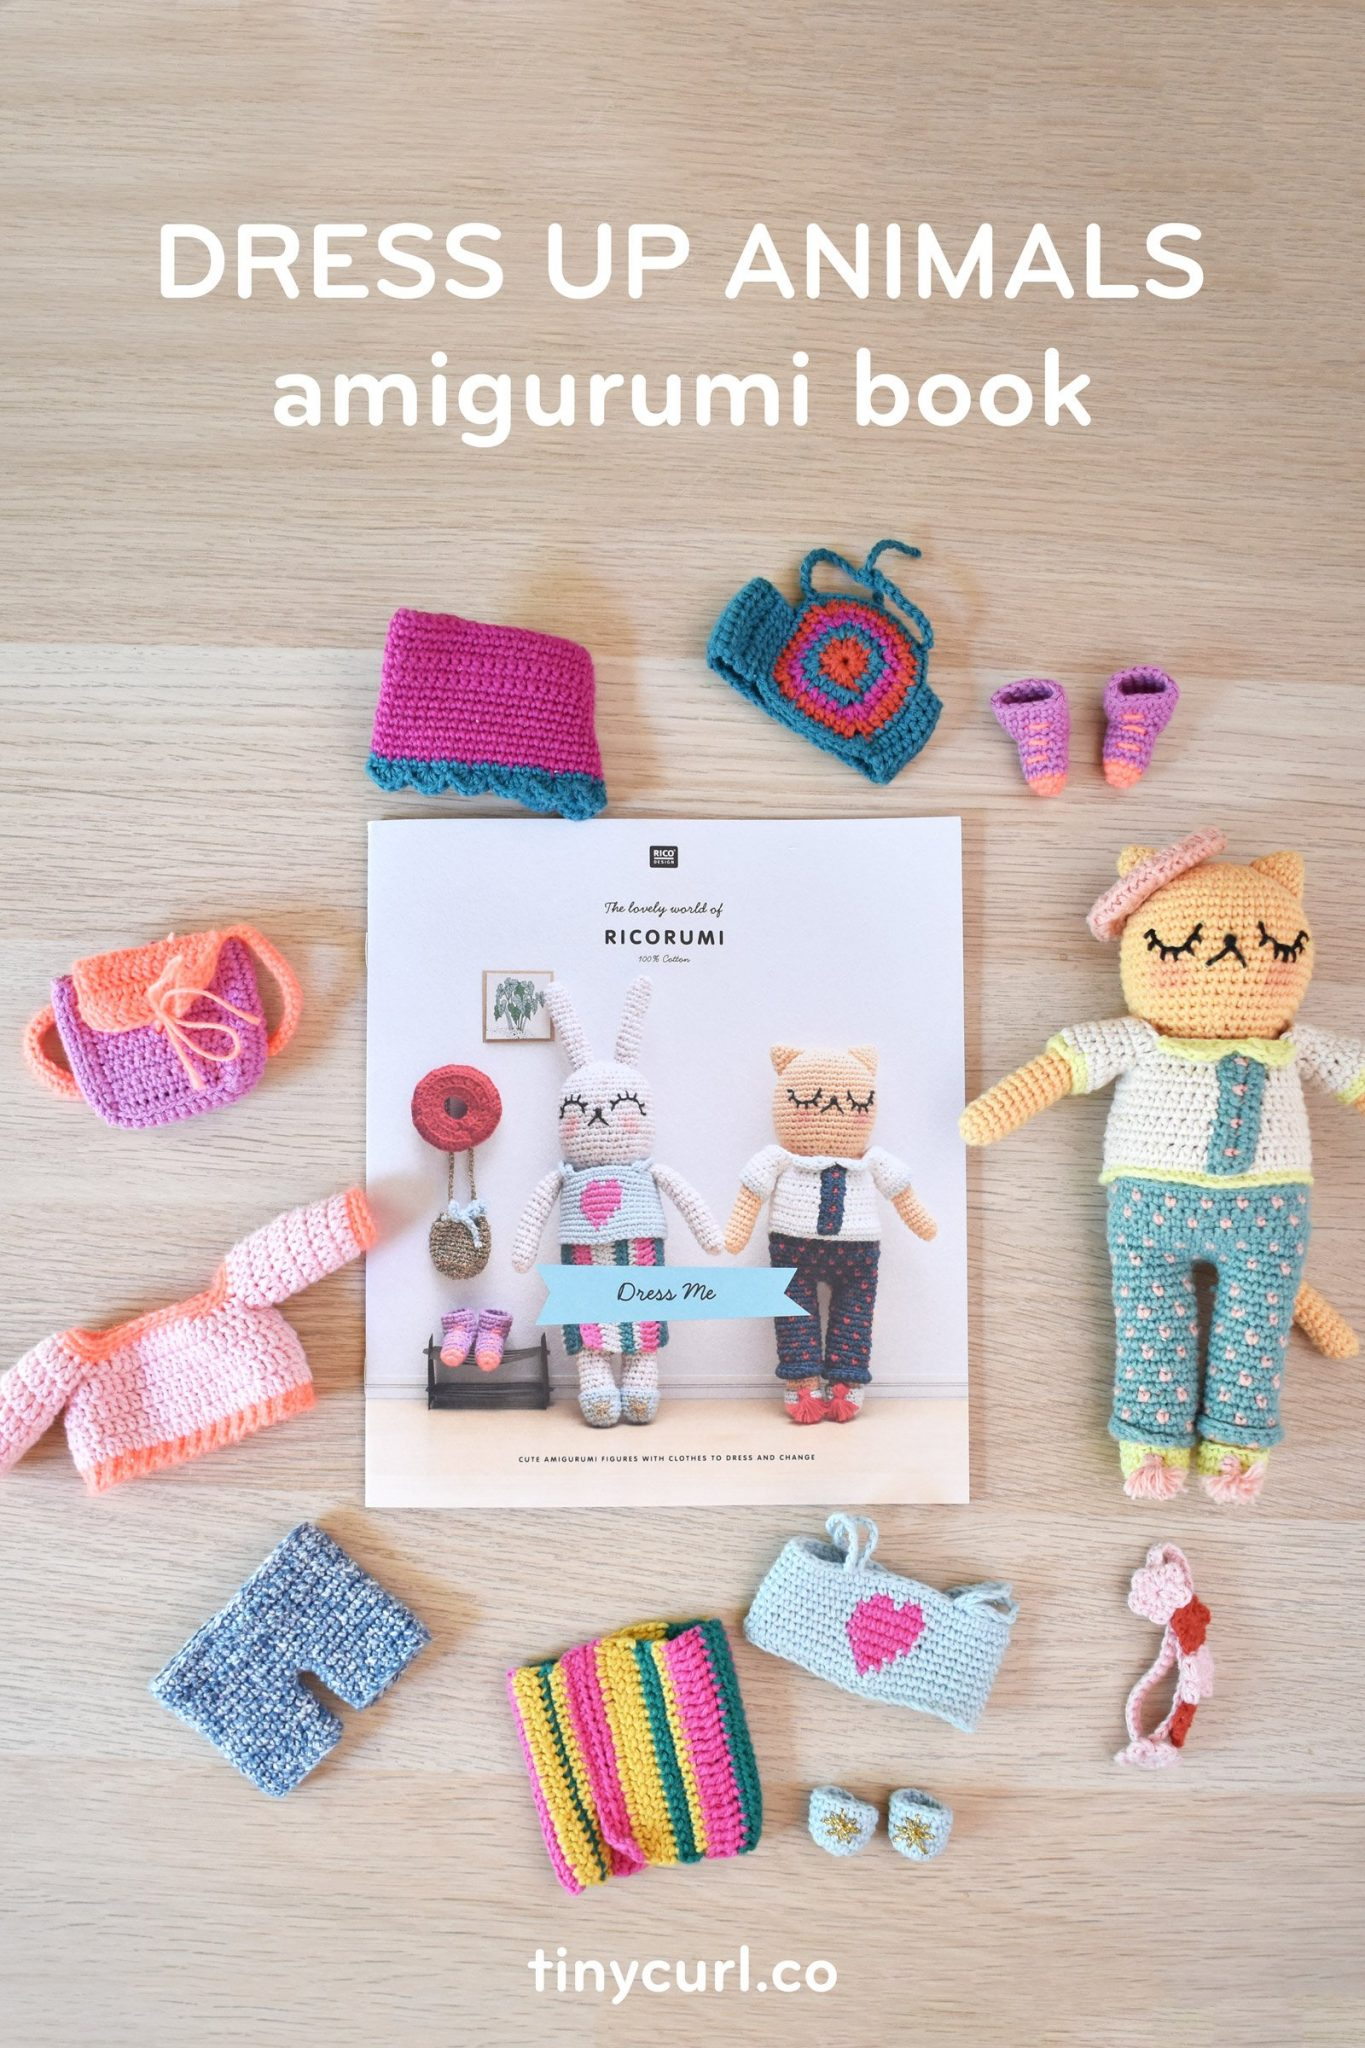 "Ricorumi Dress Me amigurumi book sitting on a wooden backdrop surrounded by the crochet clothes patterns from the book. There is also an amigurumi cat to the right of the book. Text says ""Dress Up Animals amigurumi book"""